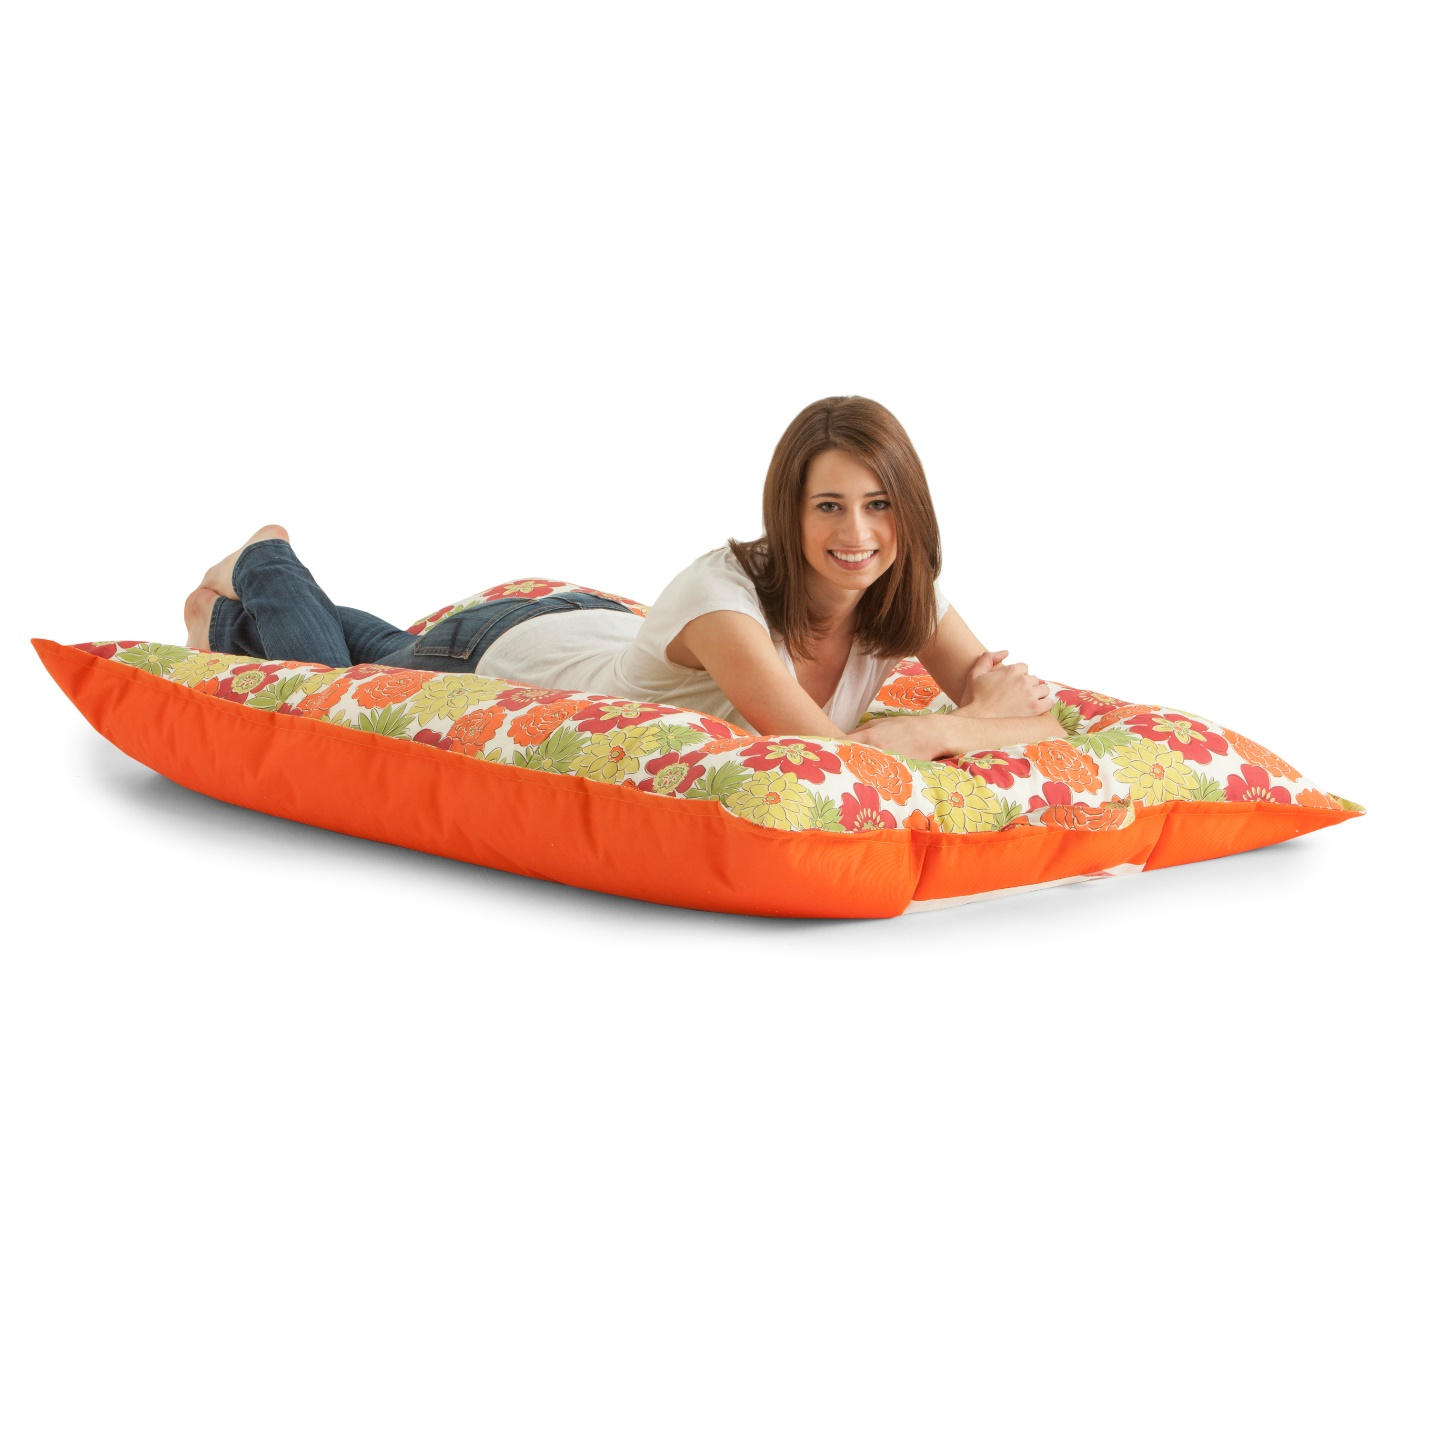 Swimming Pool Floats Poolheatpumps Com